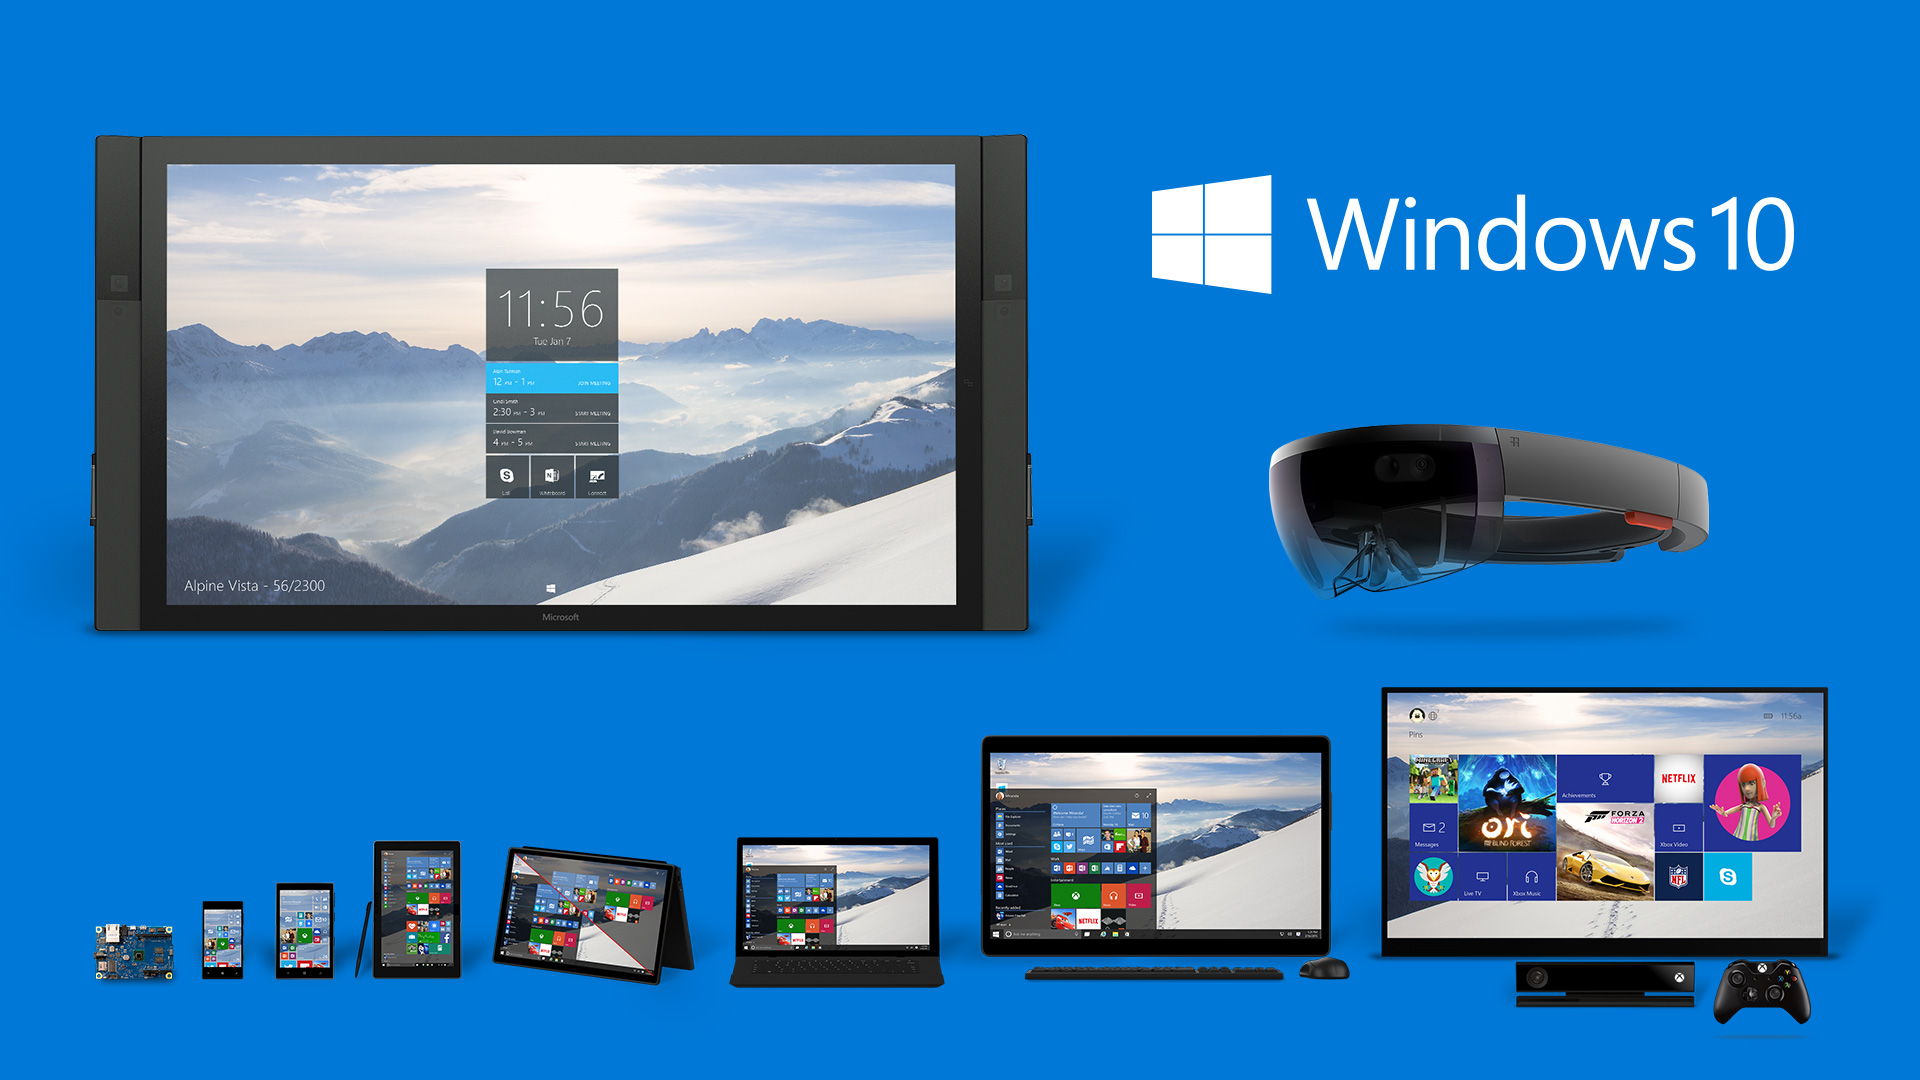 Windows 10 product family